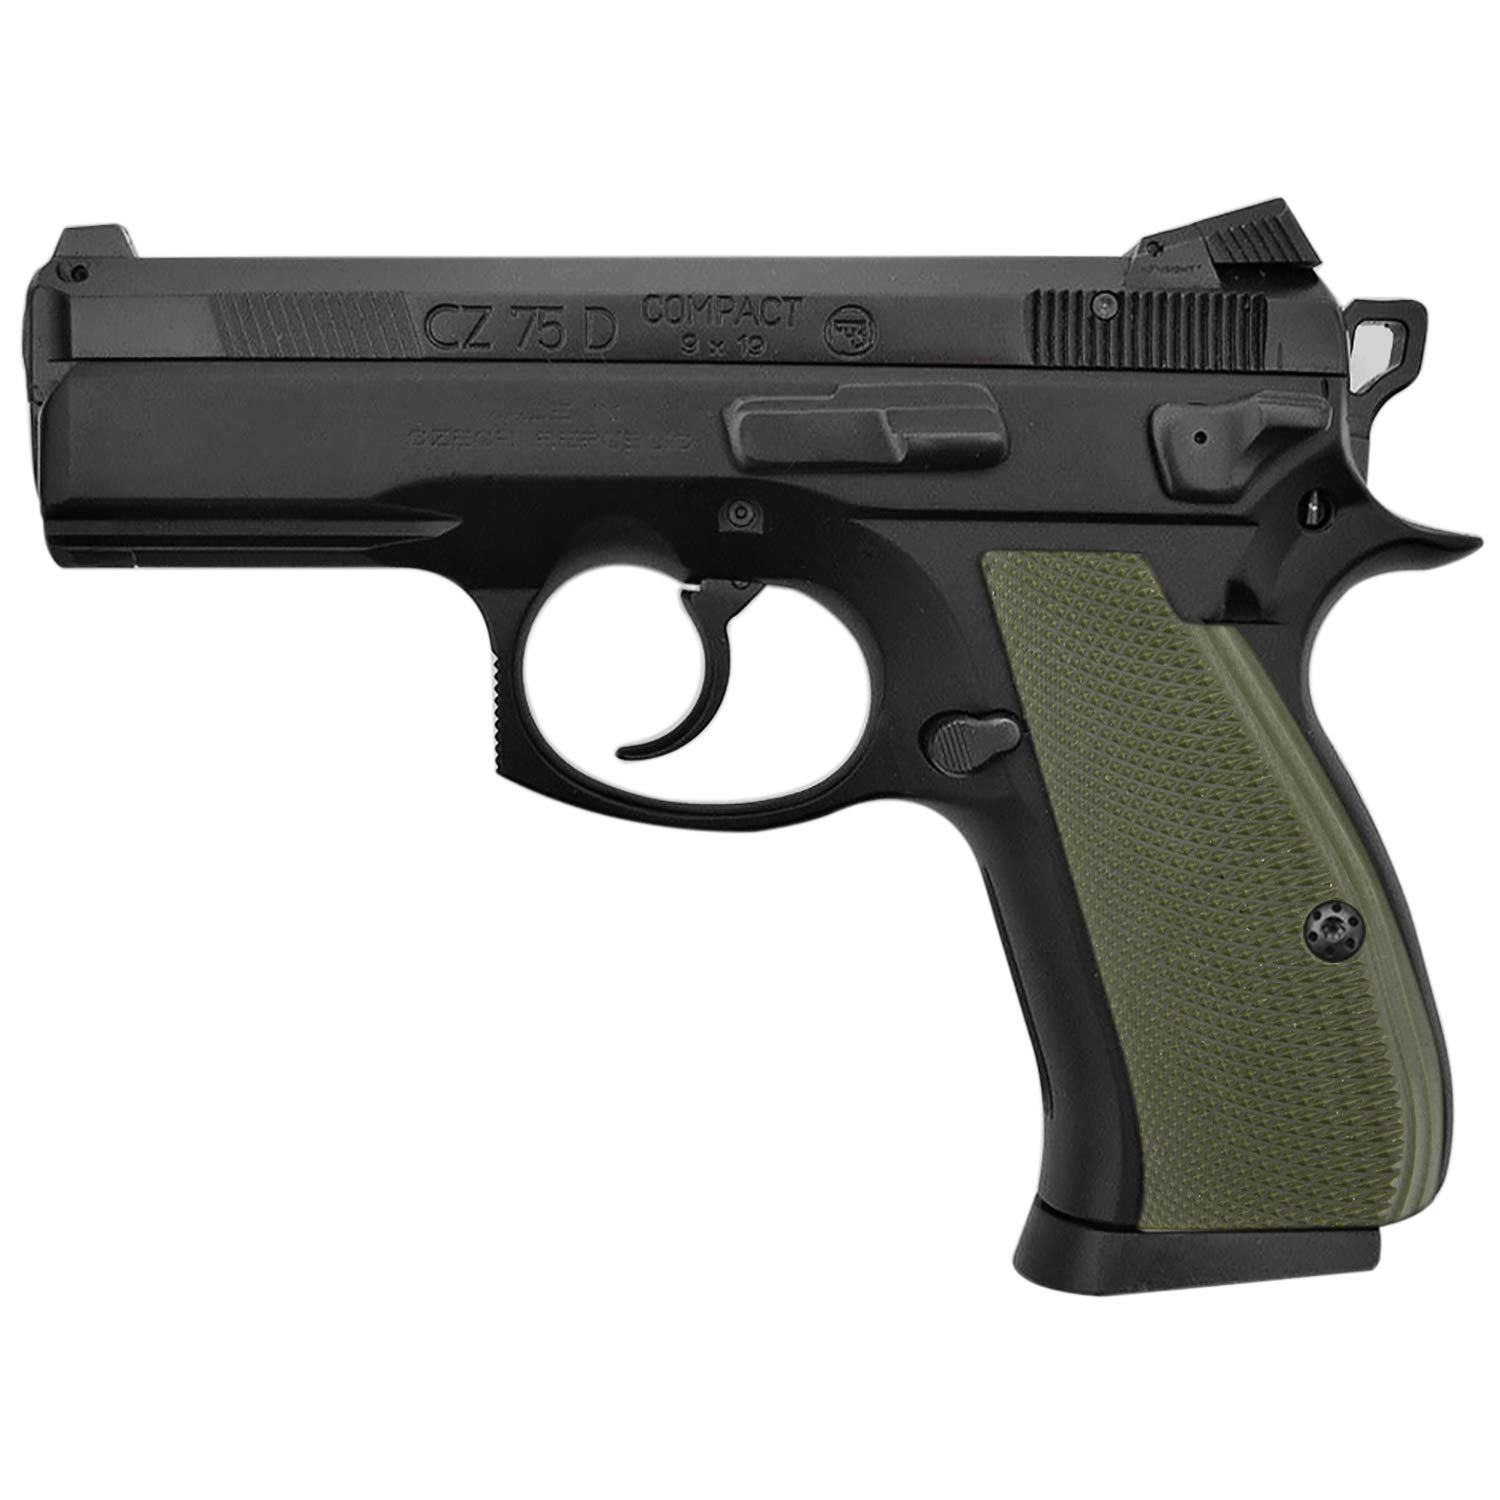 Cool Hand G10 Grips for CZ 75/85 Compact, Free Screws Included, Green, SPC-PN-2 by Cool Hand